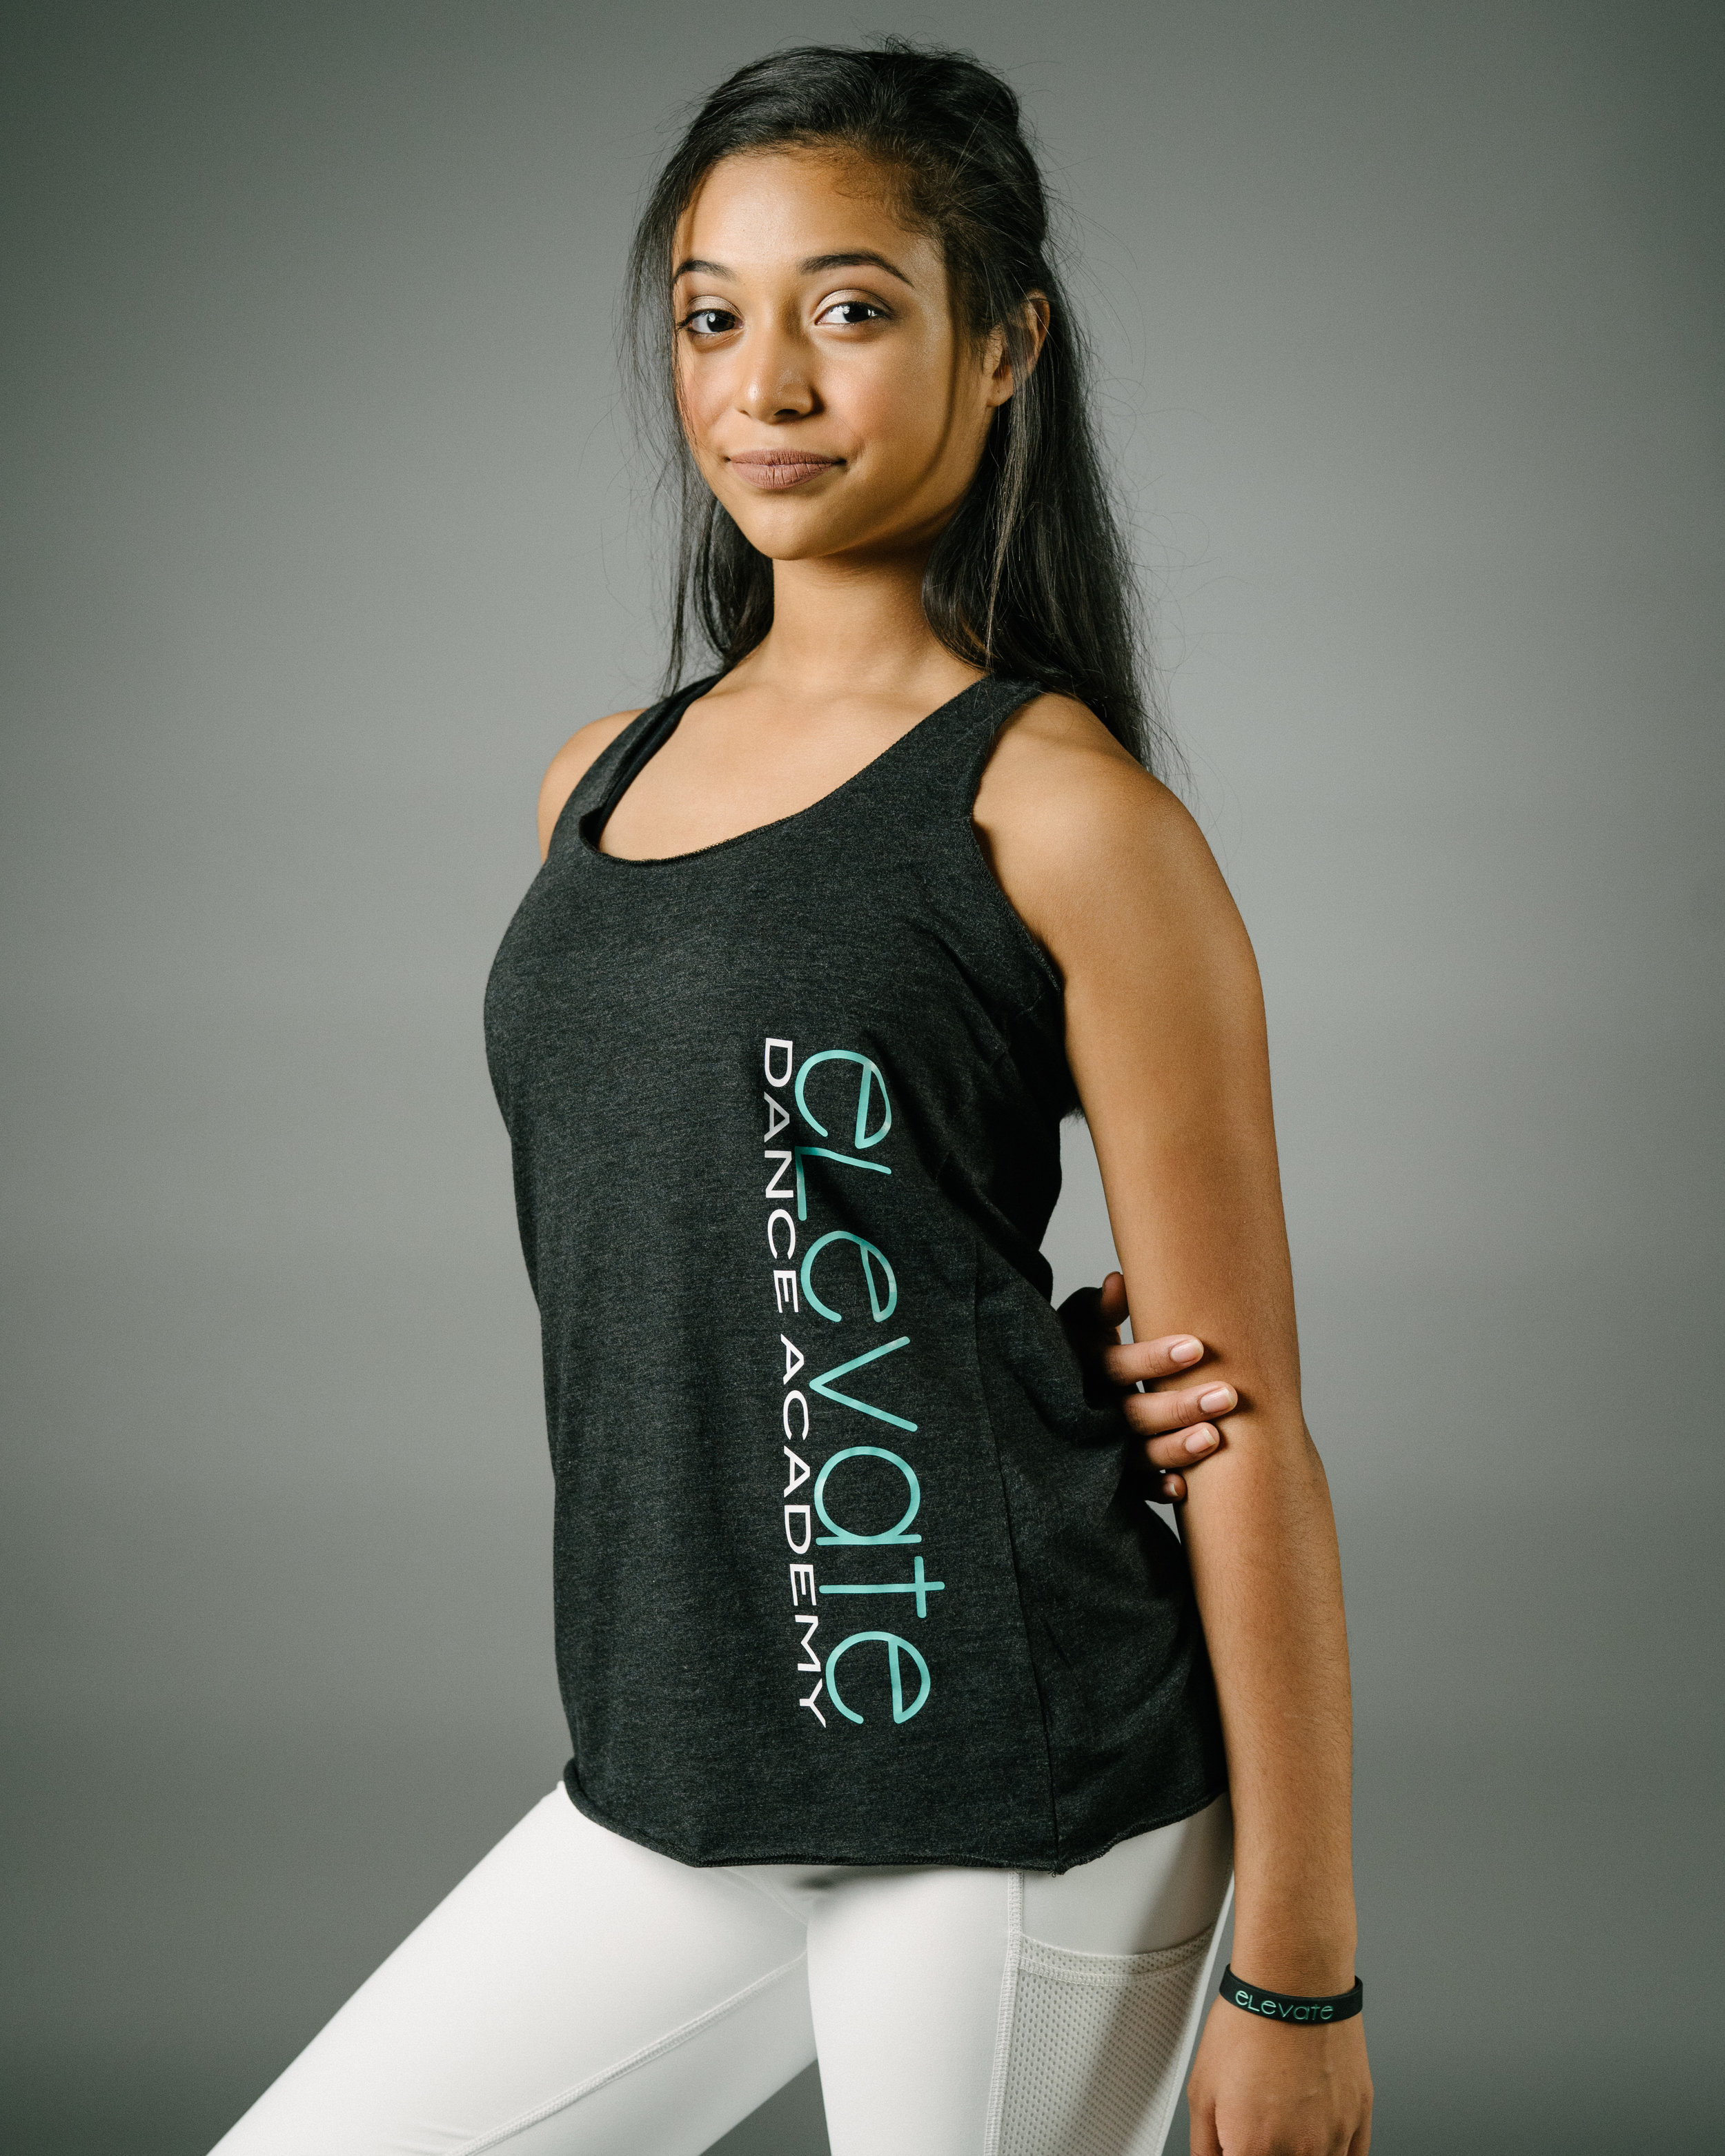 Charcoal Black Racerback Tank (Elevate logo down the left side)